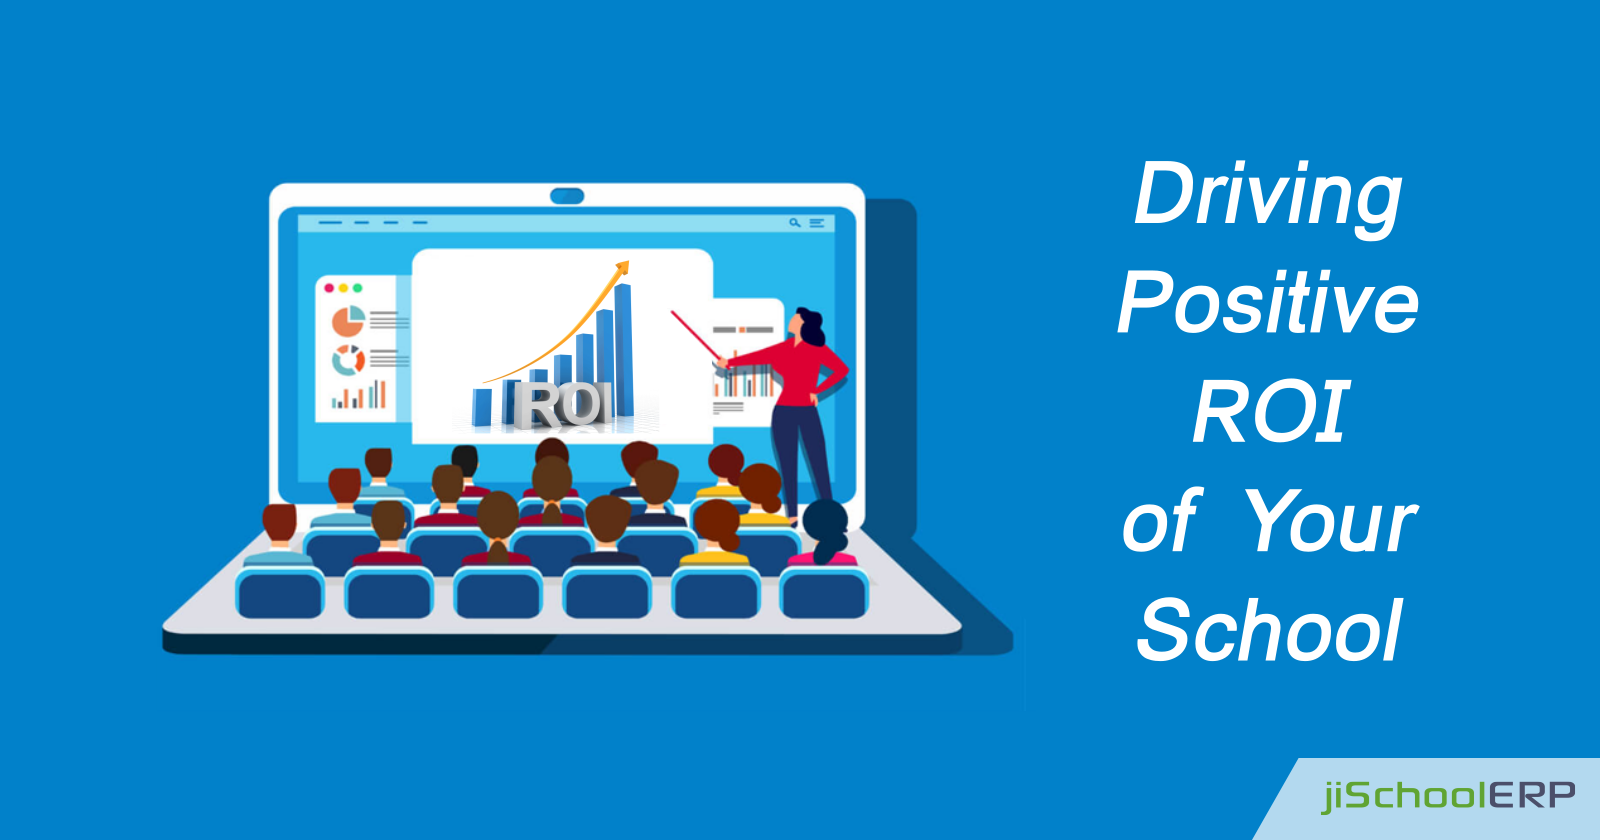 Can School ERP drive positive ROI for your School?